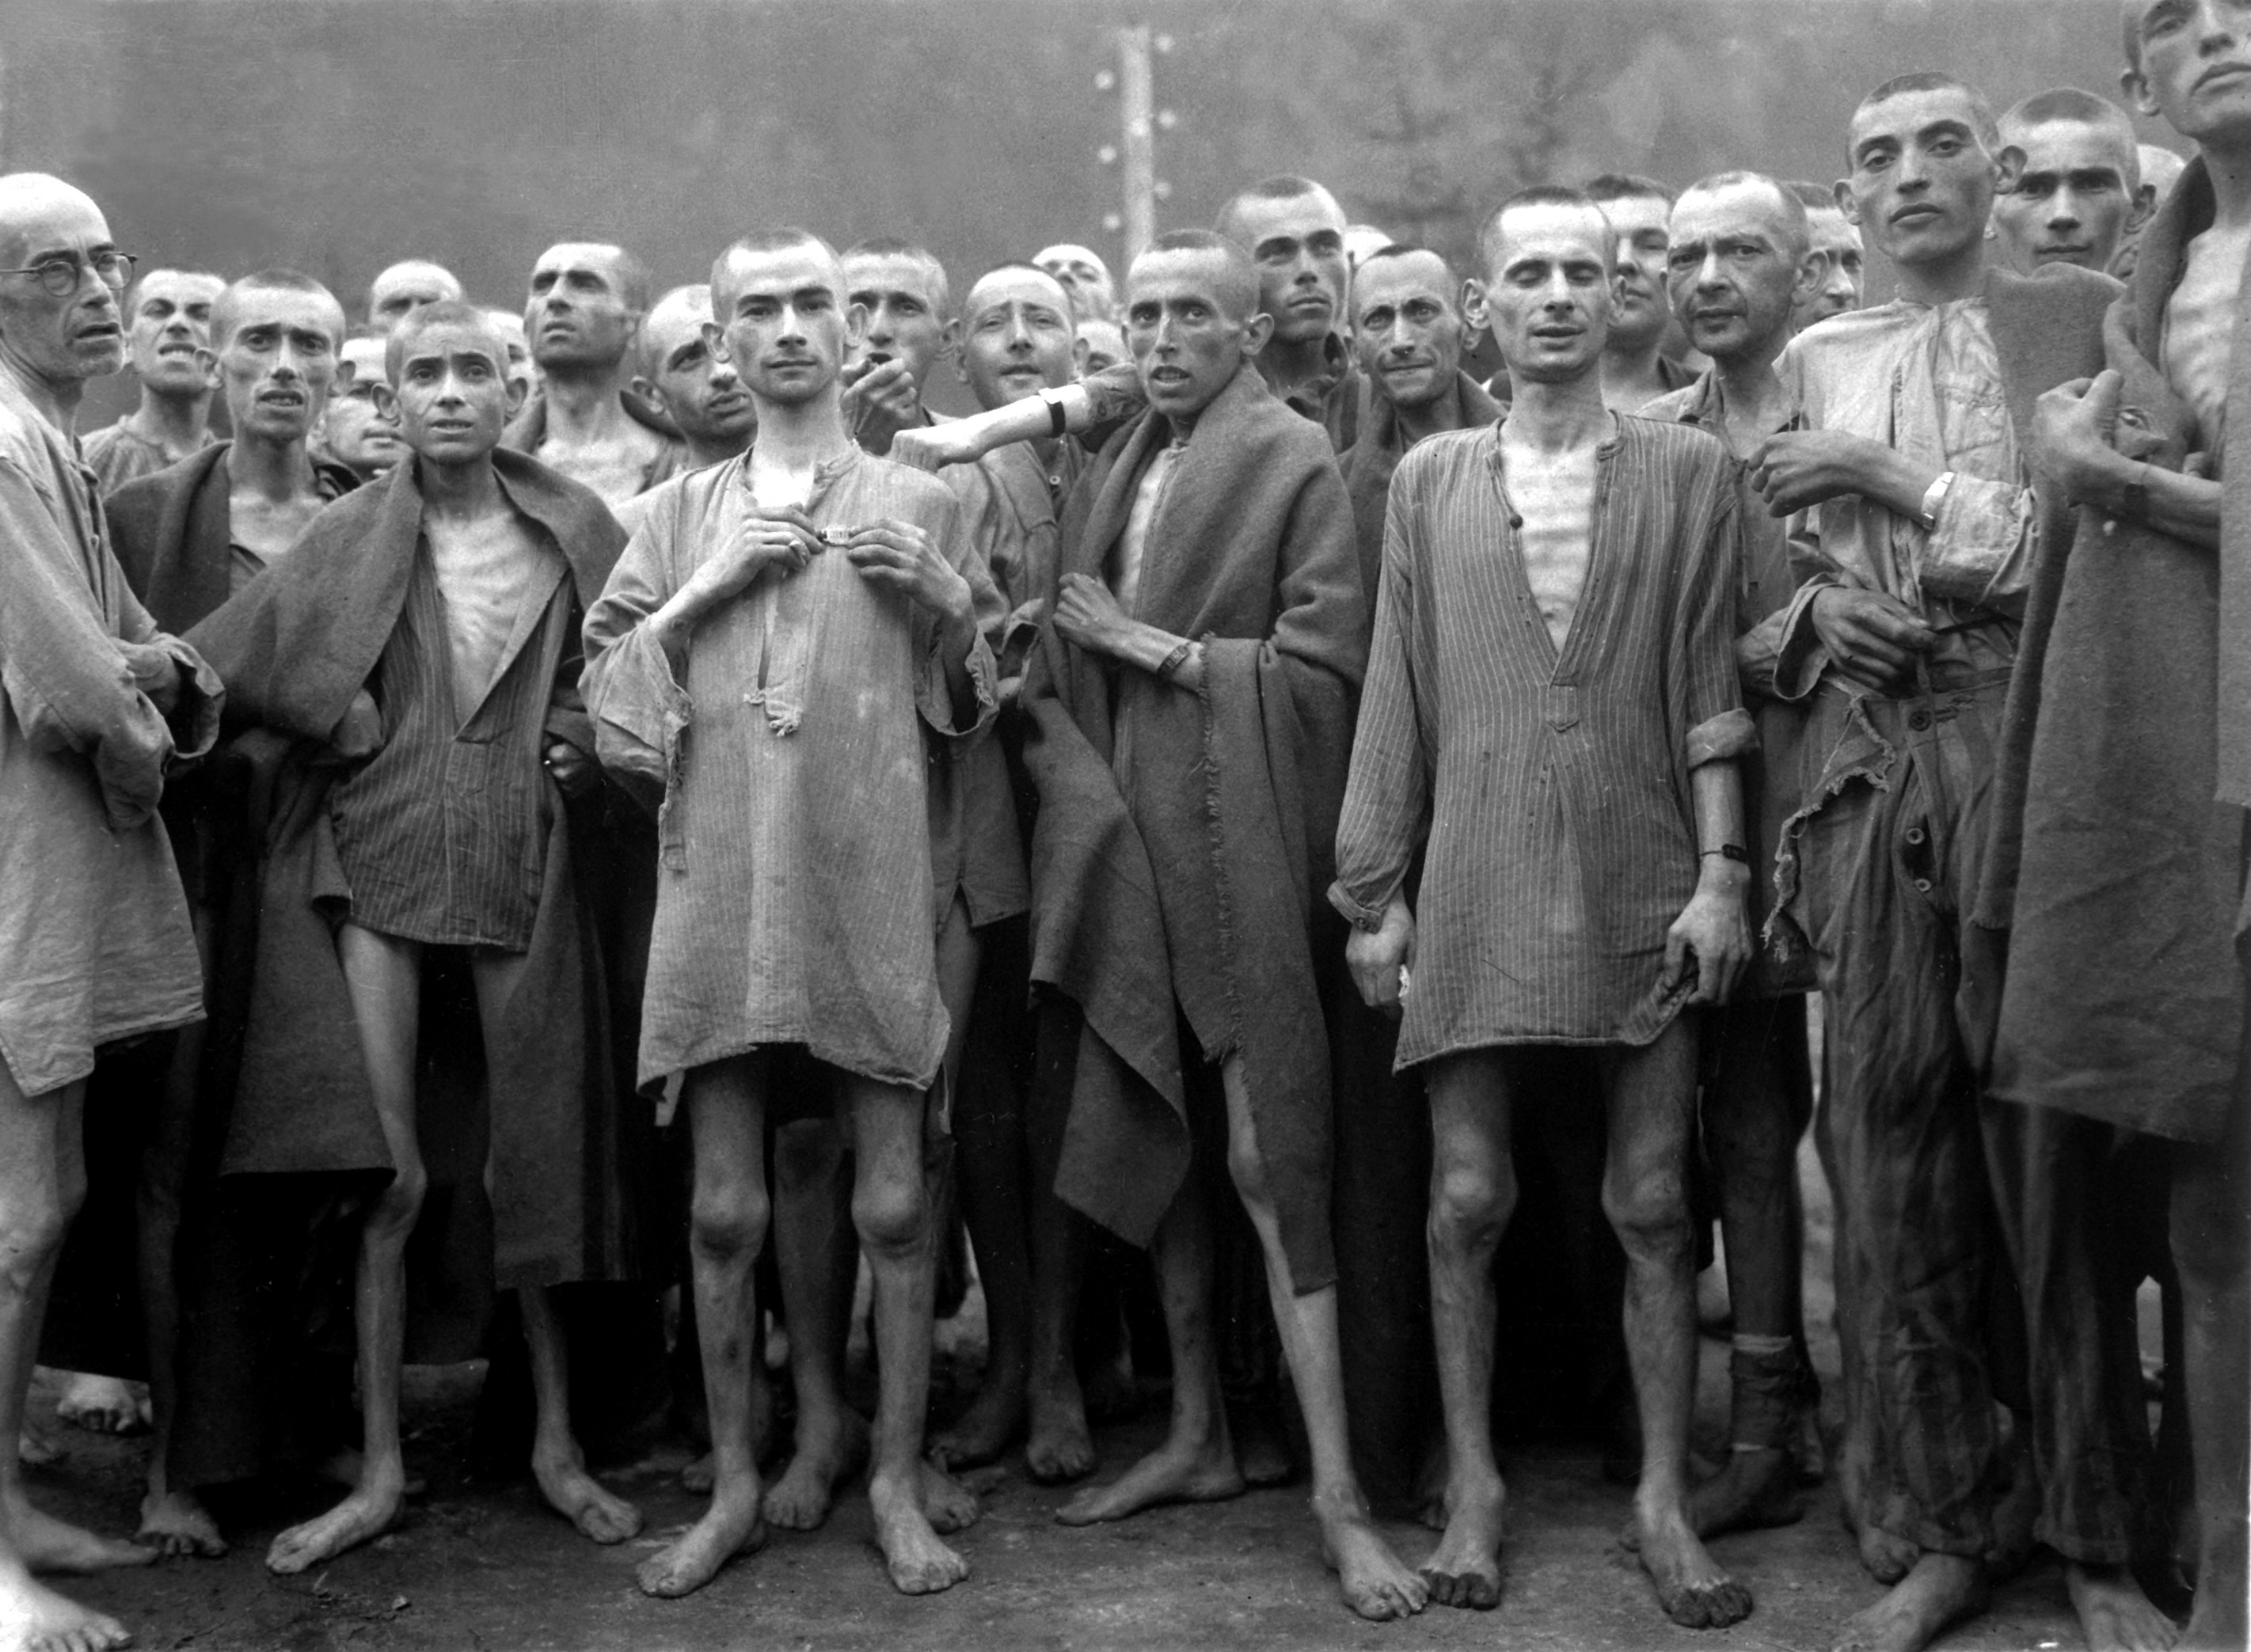 [Image: Ebensee_concentration_camp_prisoners_1945.jpg]